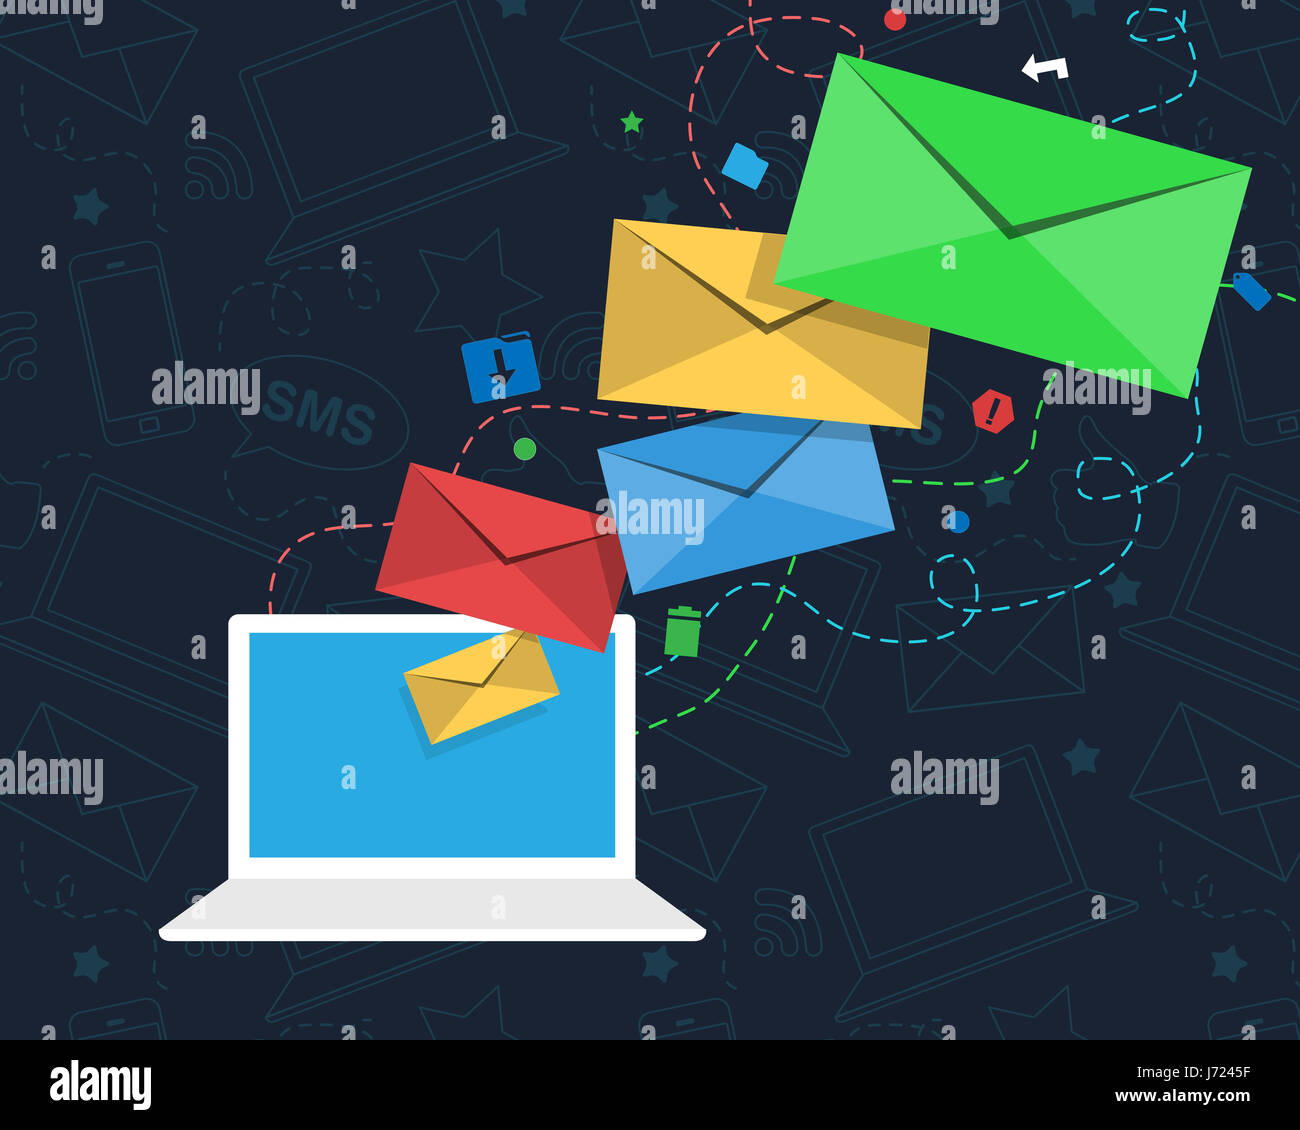 An email newsletter concept with colorful envelopes flying from the screen of a laptop. The computer is surrounded - Stock Image